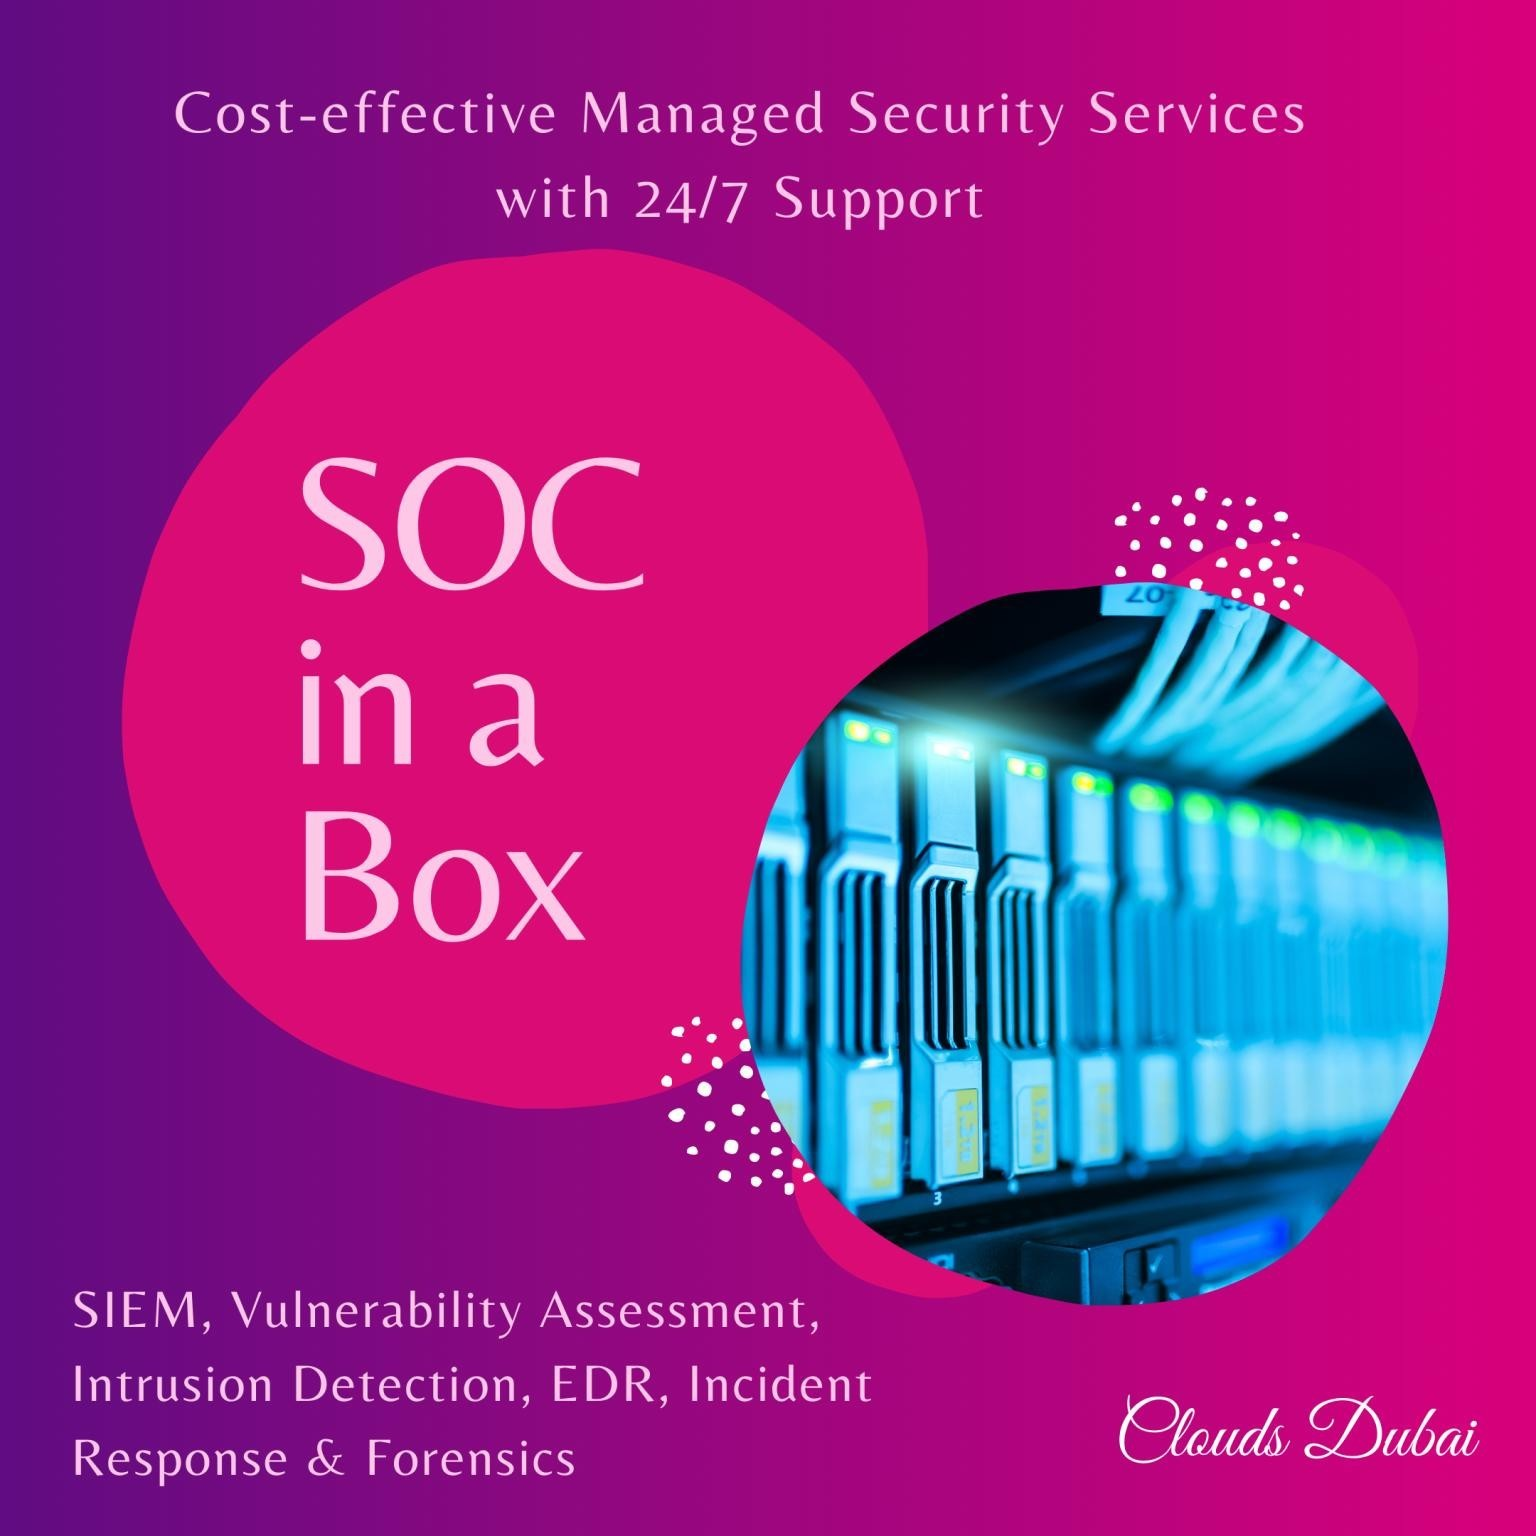 SOC In a Box offering